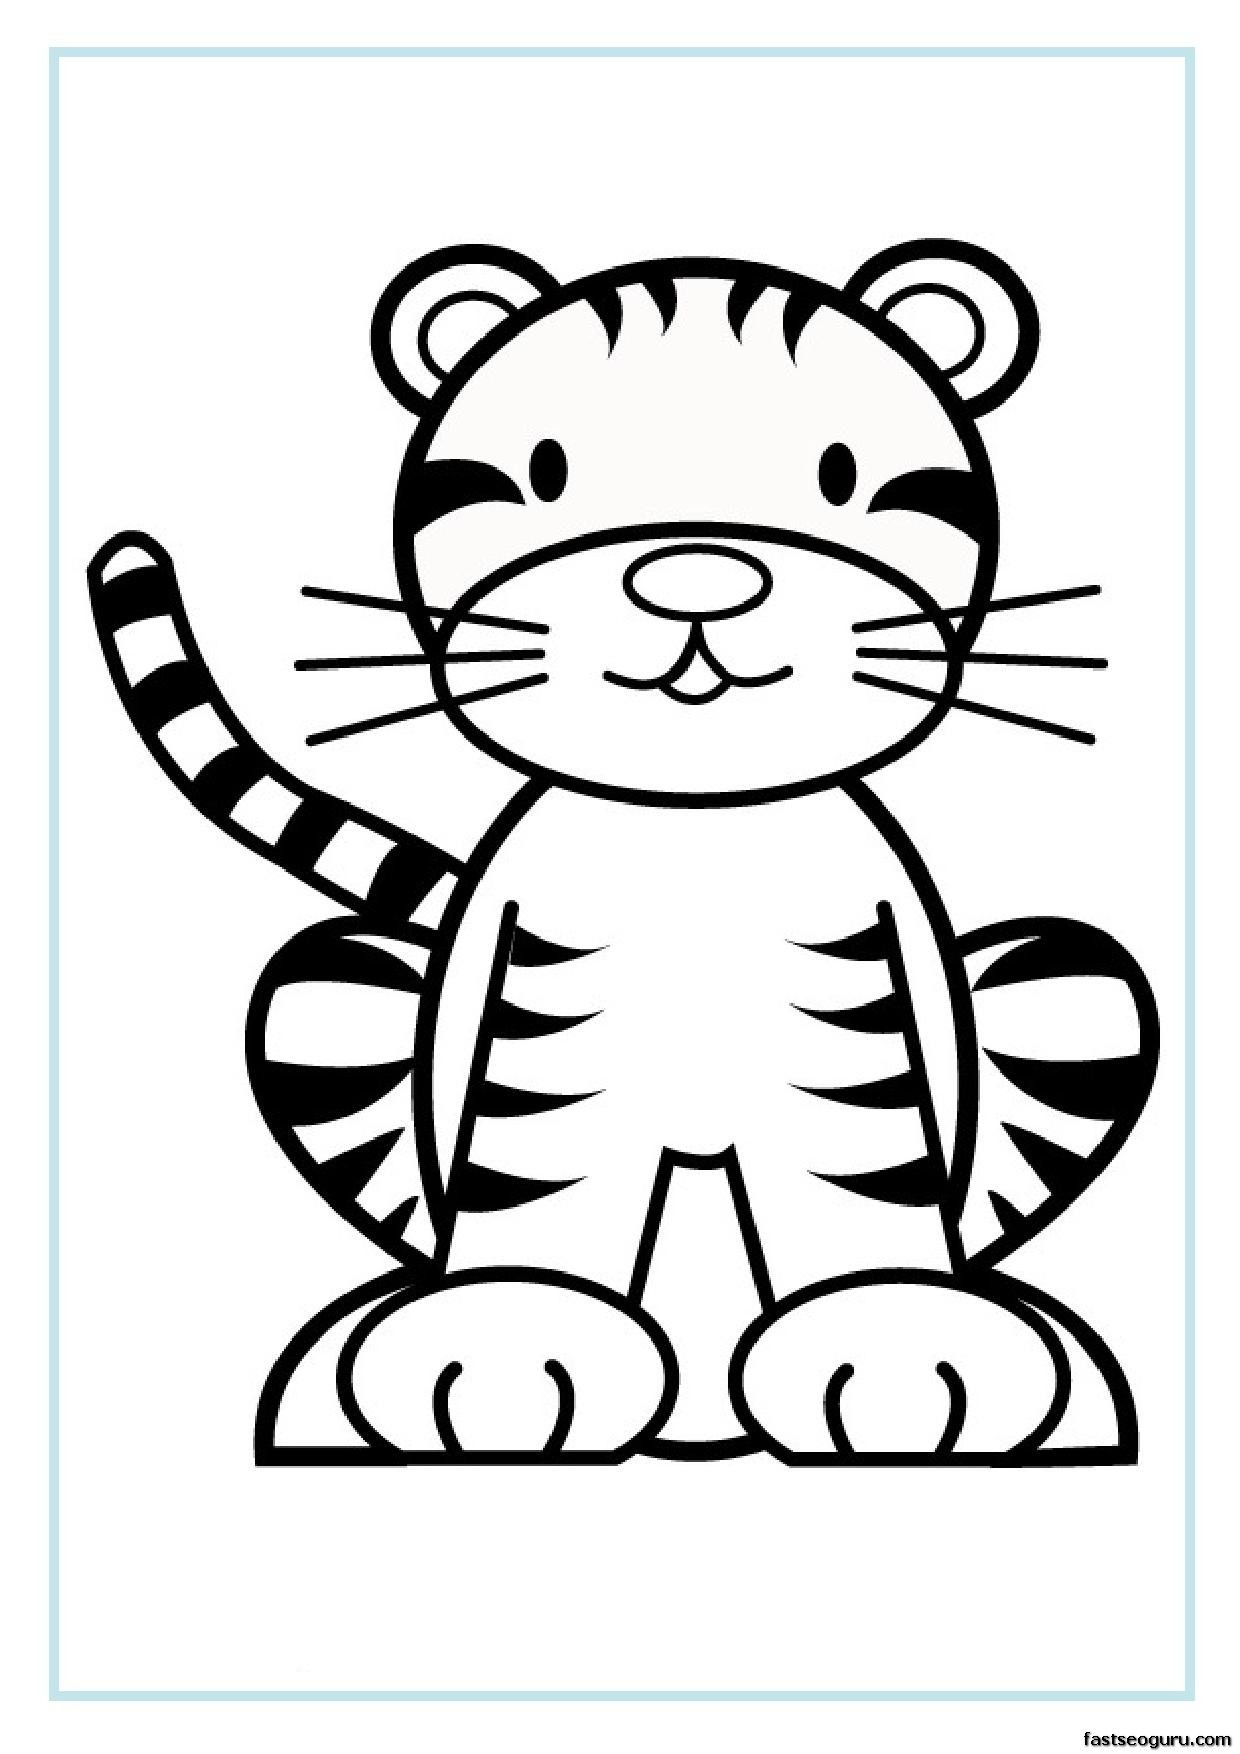 Free Printable Animal Tiger Baby Colouring Sheet For Kids Tiger